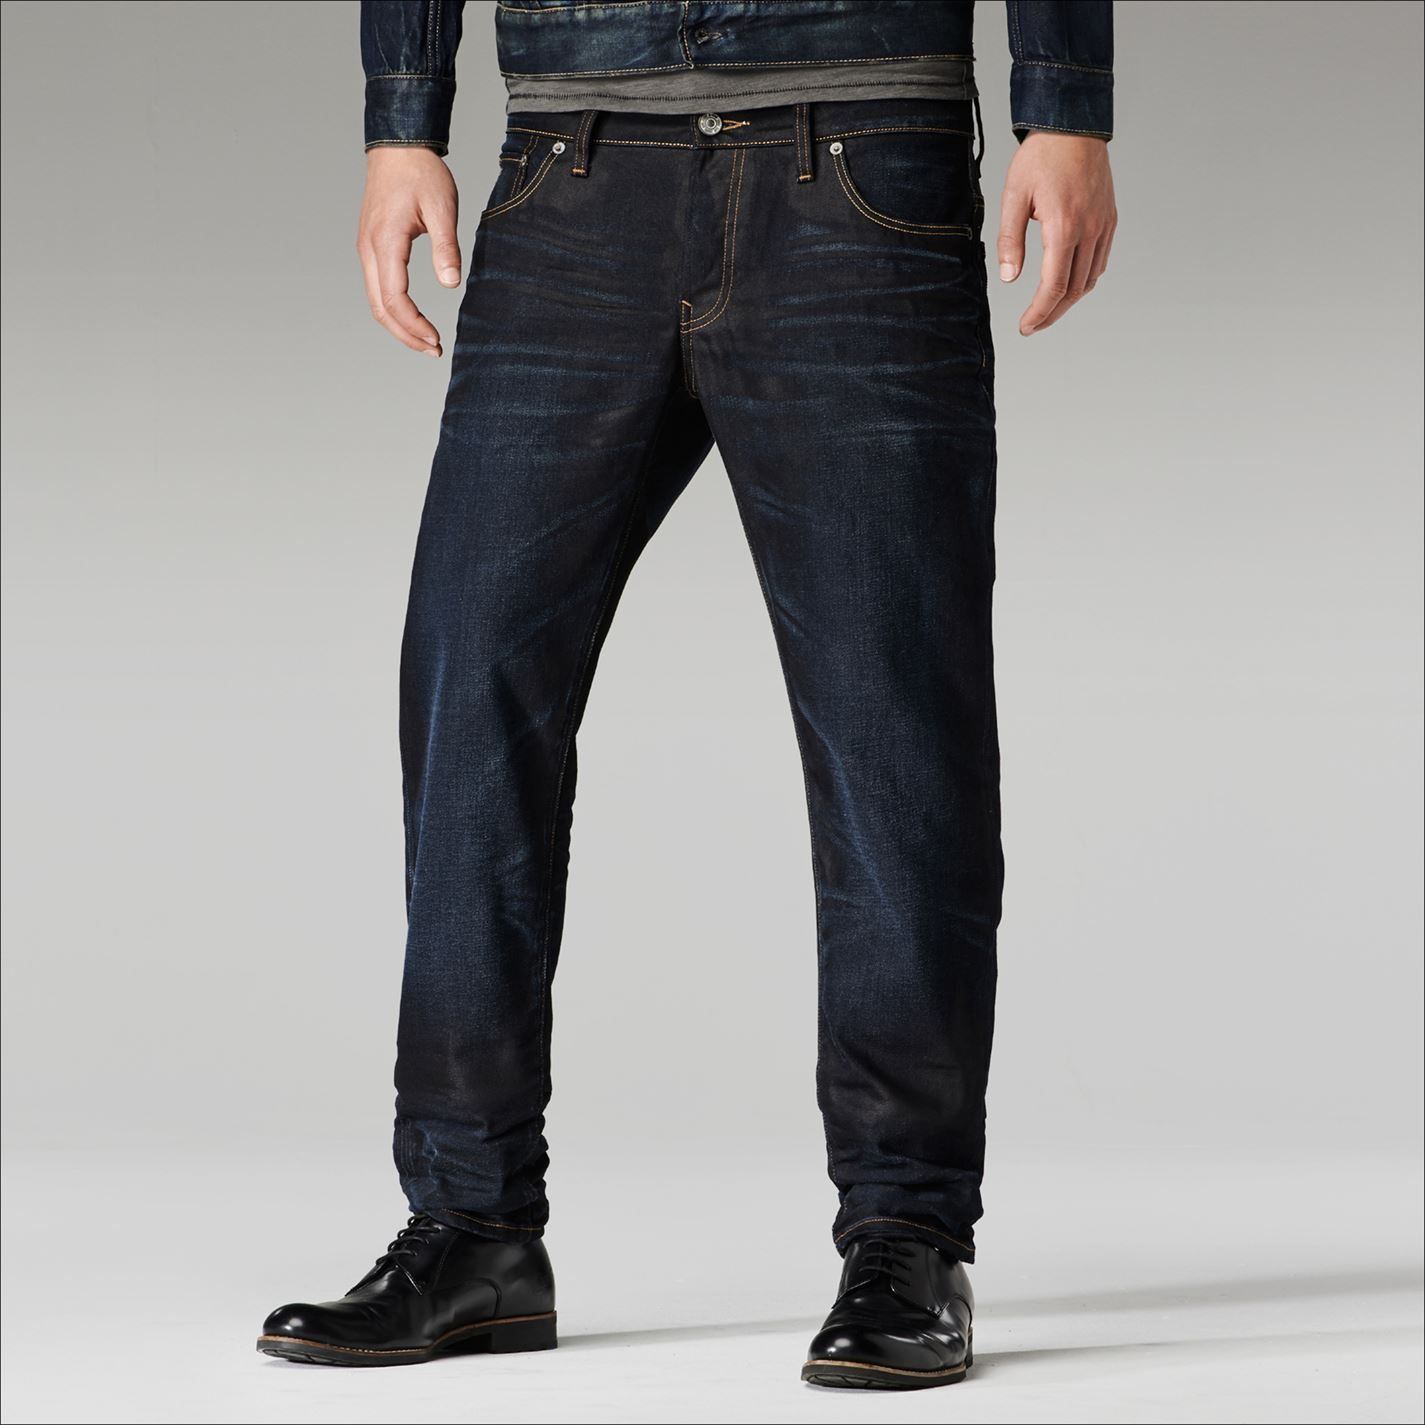 Gstar 3301 Low Tapered Mens Jeans #USC #mensfashion #denim #jeans #GStar